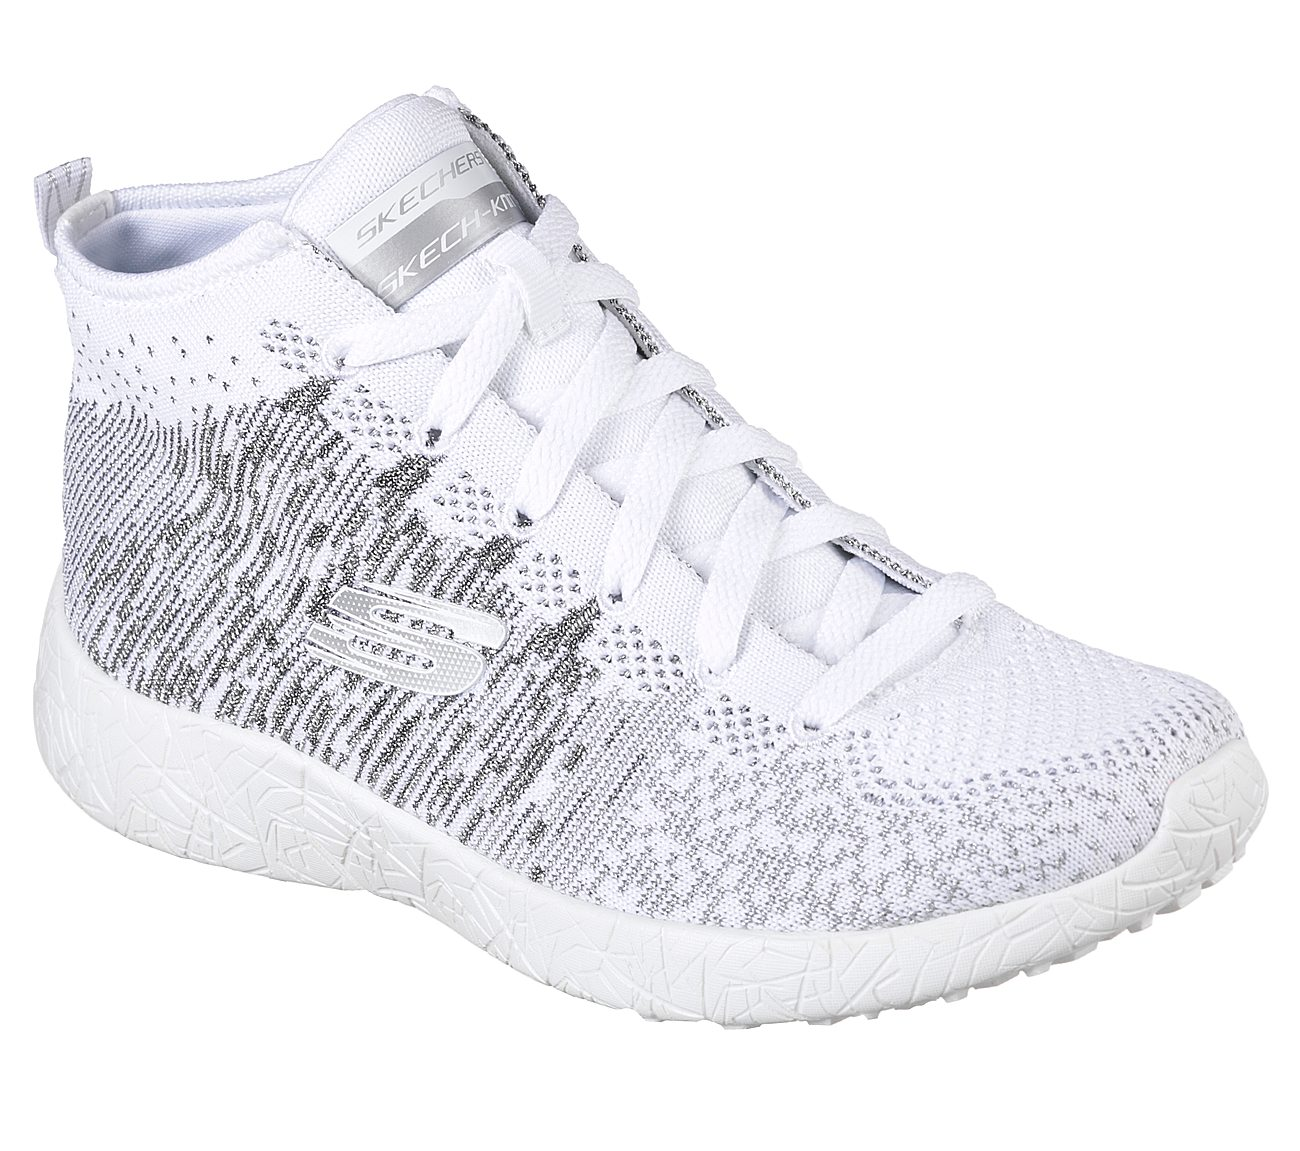 7a51ef65bf09 Buy SKECHERS Burst - Sweet Symphony SKECHERS Sport Shoes only £69.00